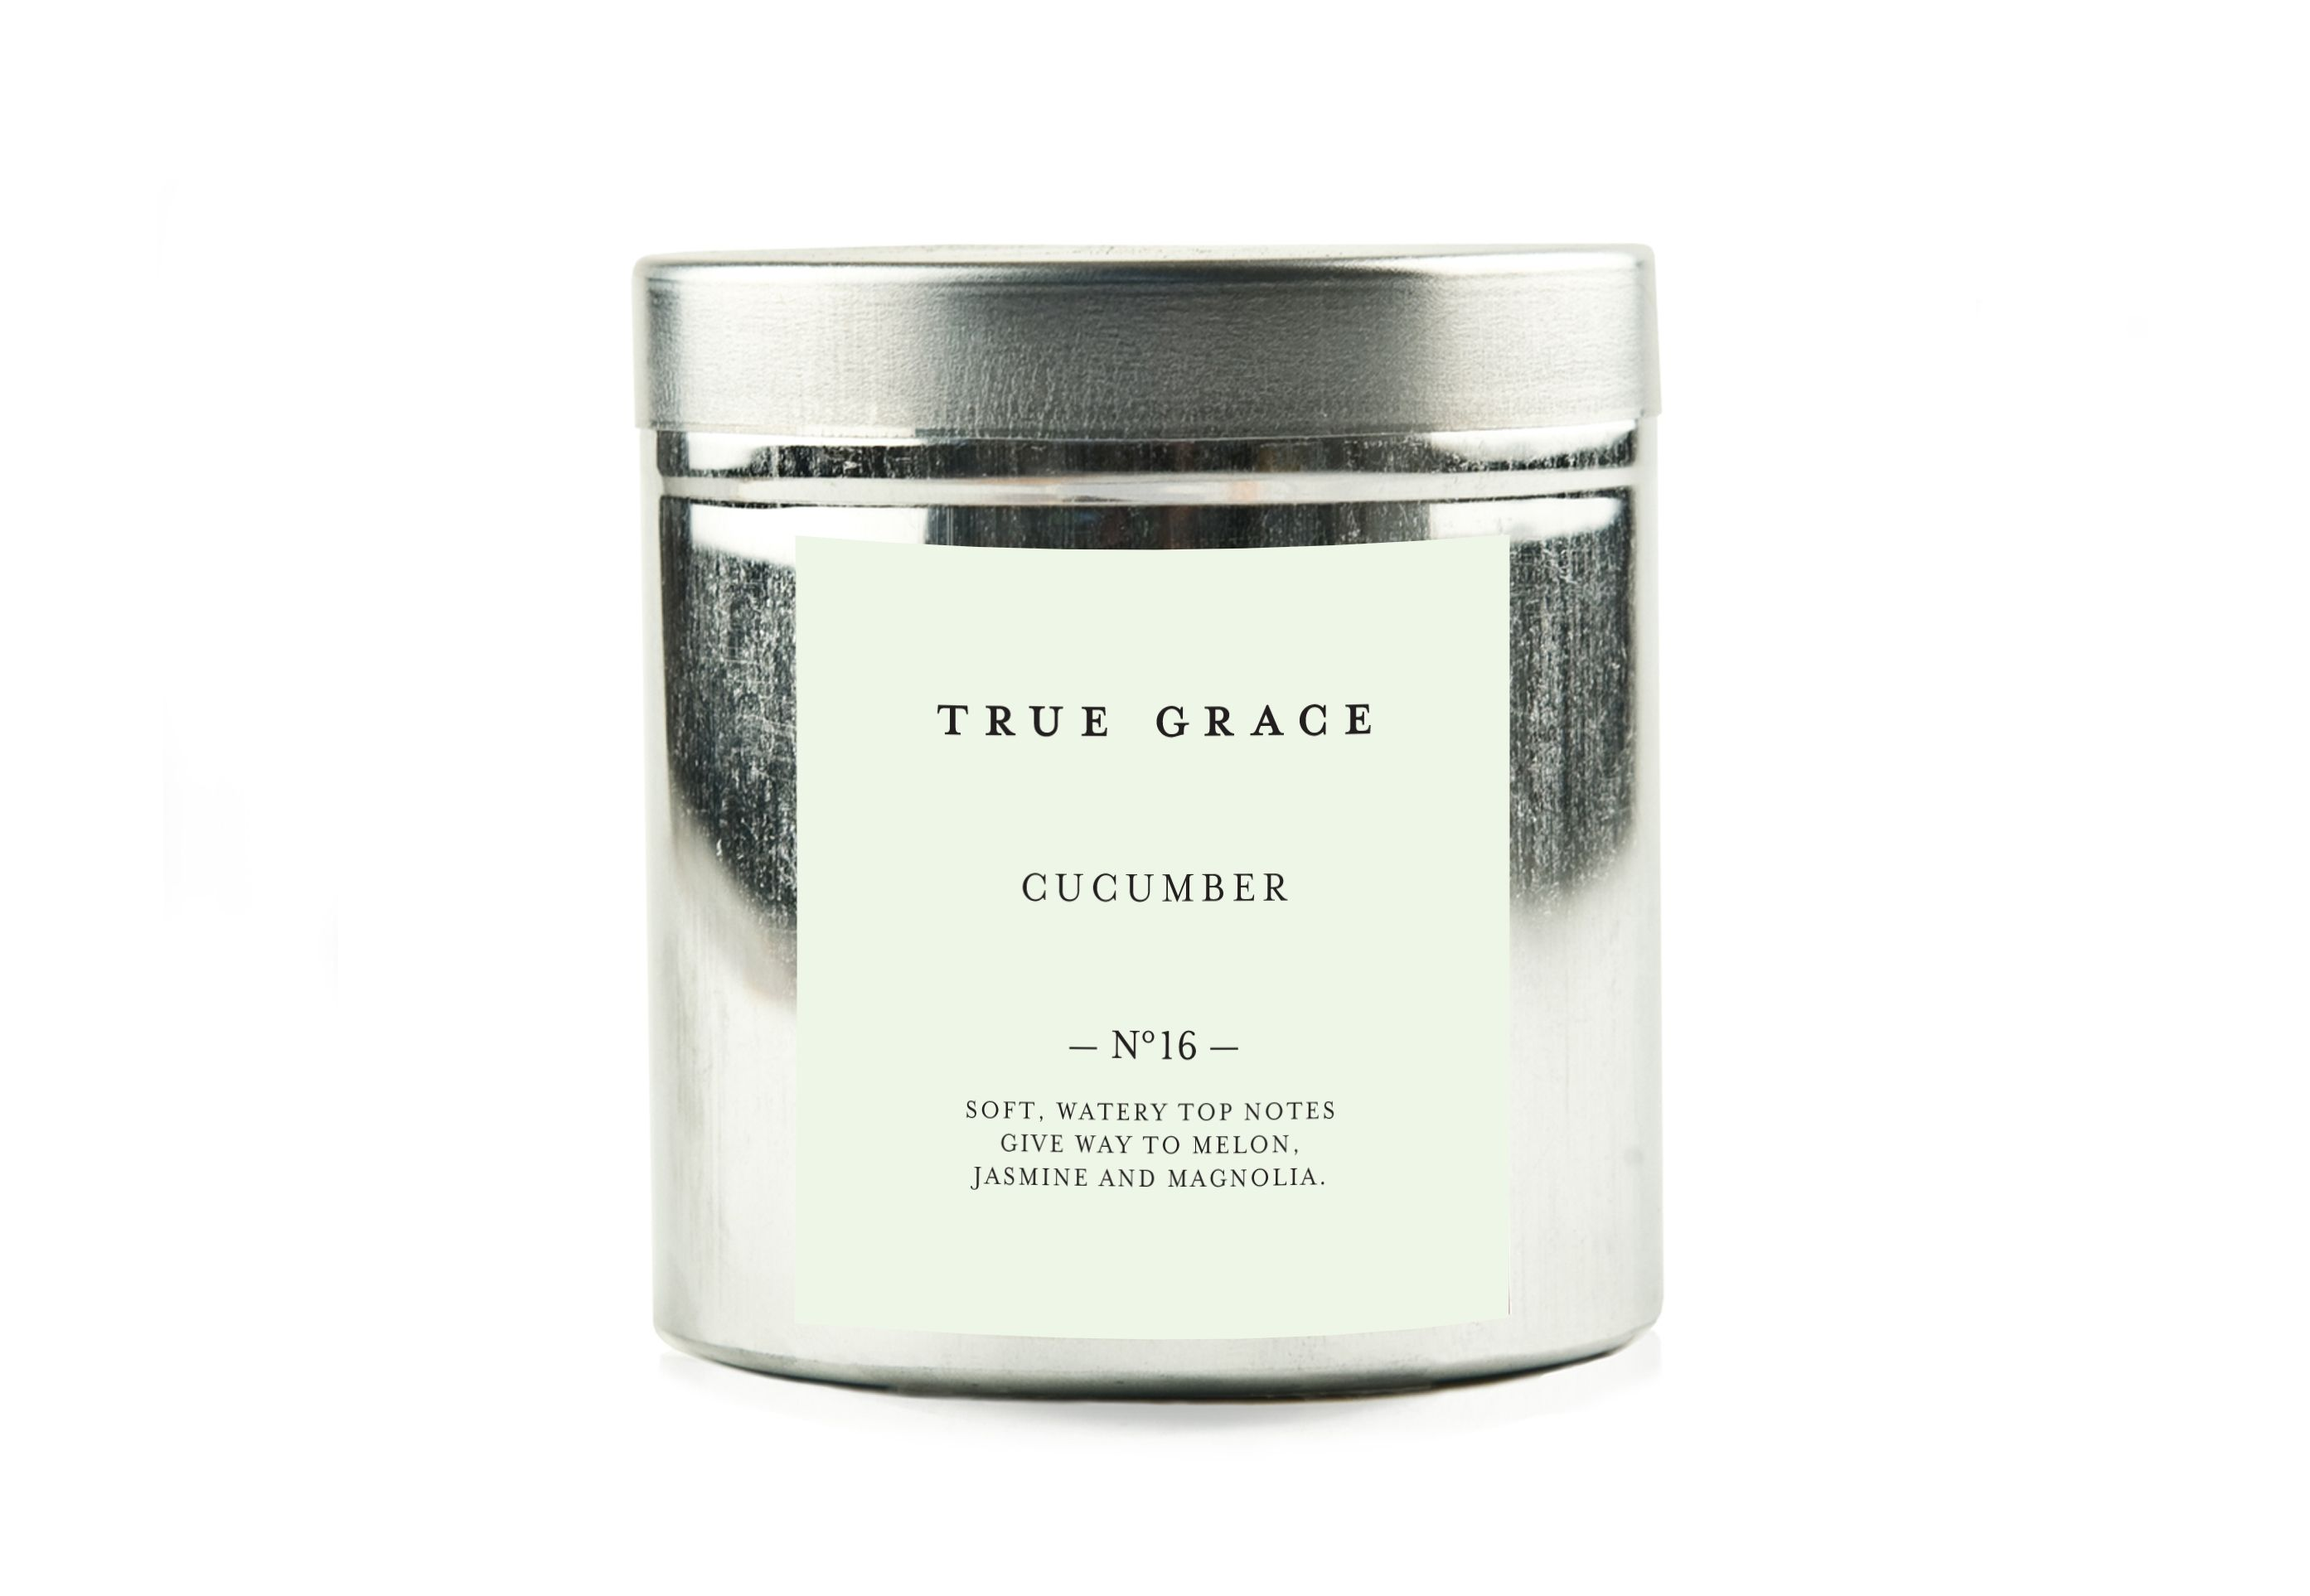 This beautiful fragranced candle is handmade in the UK and